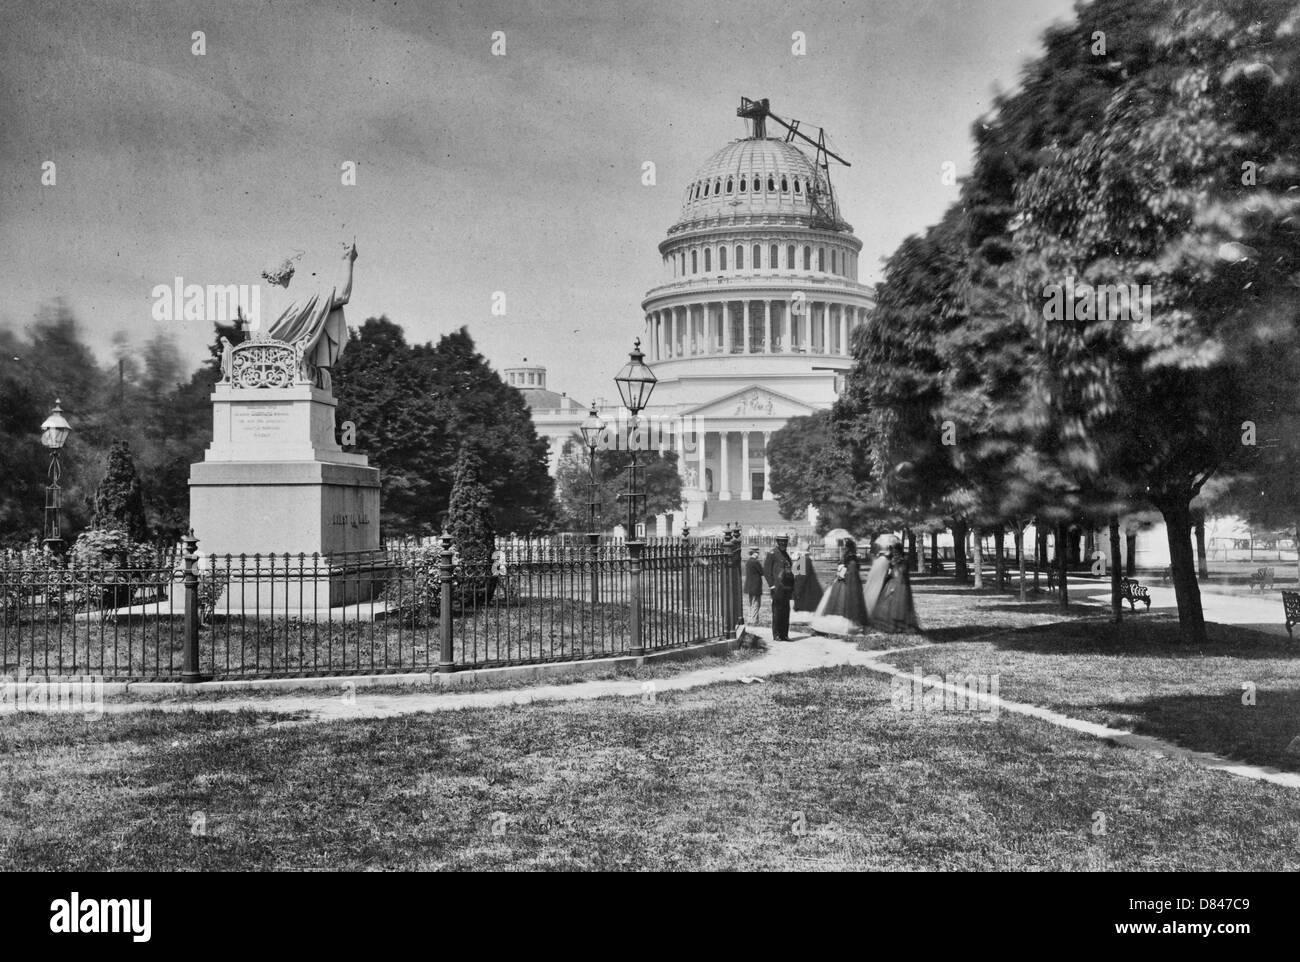 The USA Capitol Building with it's dome nearly completed, 1863 - Stock Image